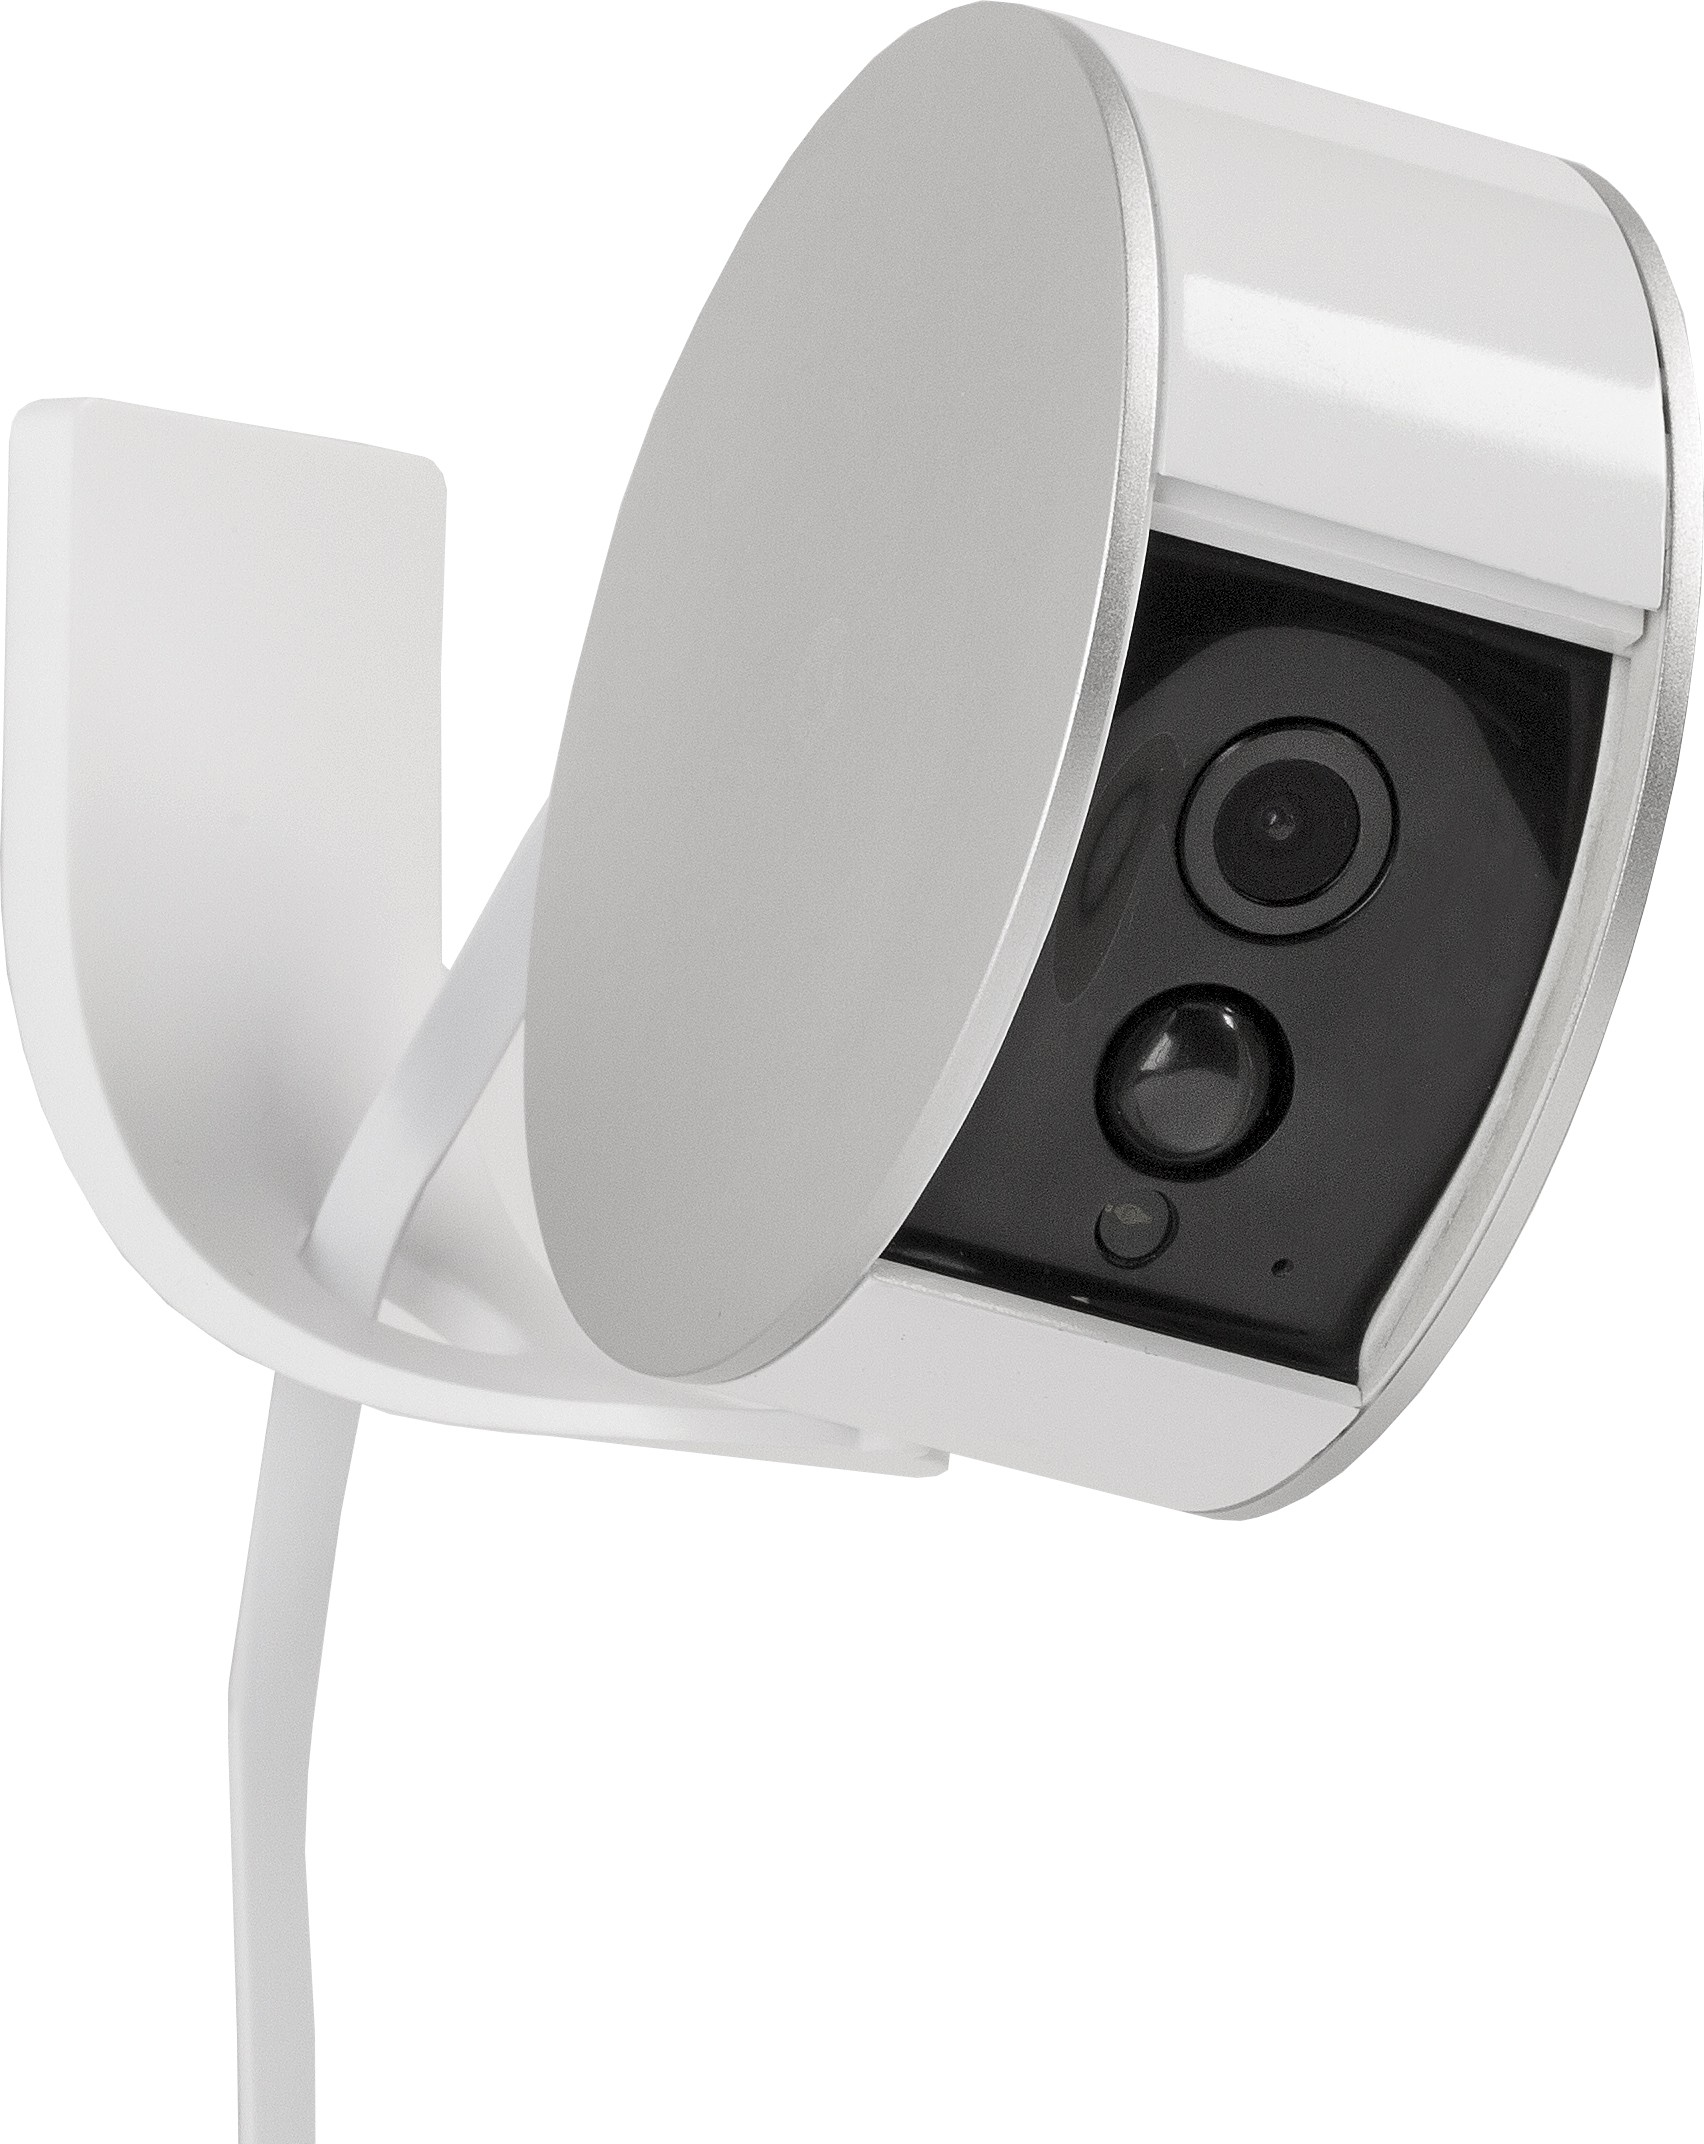 Camera Somfy Exterieur Support Mural Pour Somfy Security Camera La Boutique Somfy